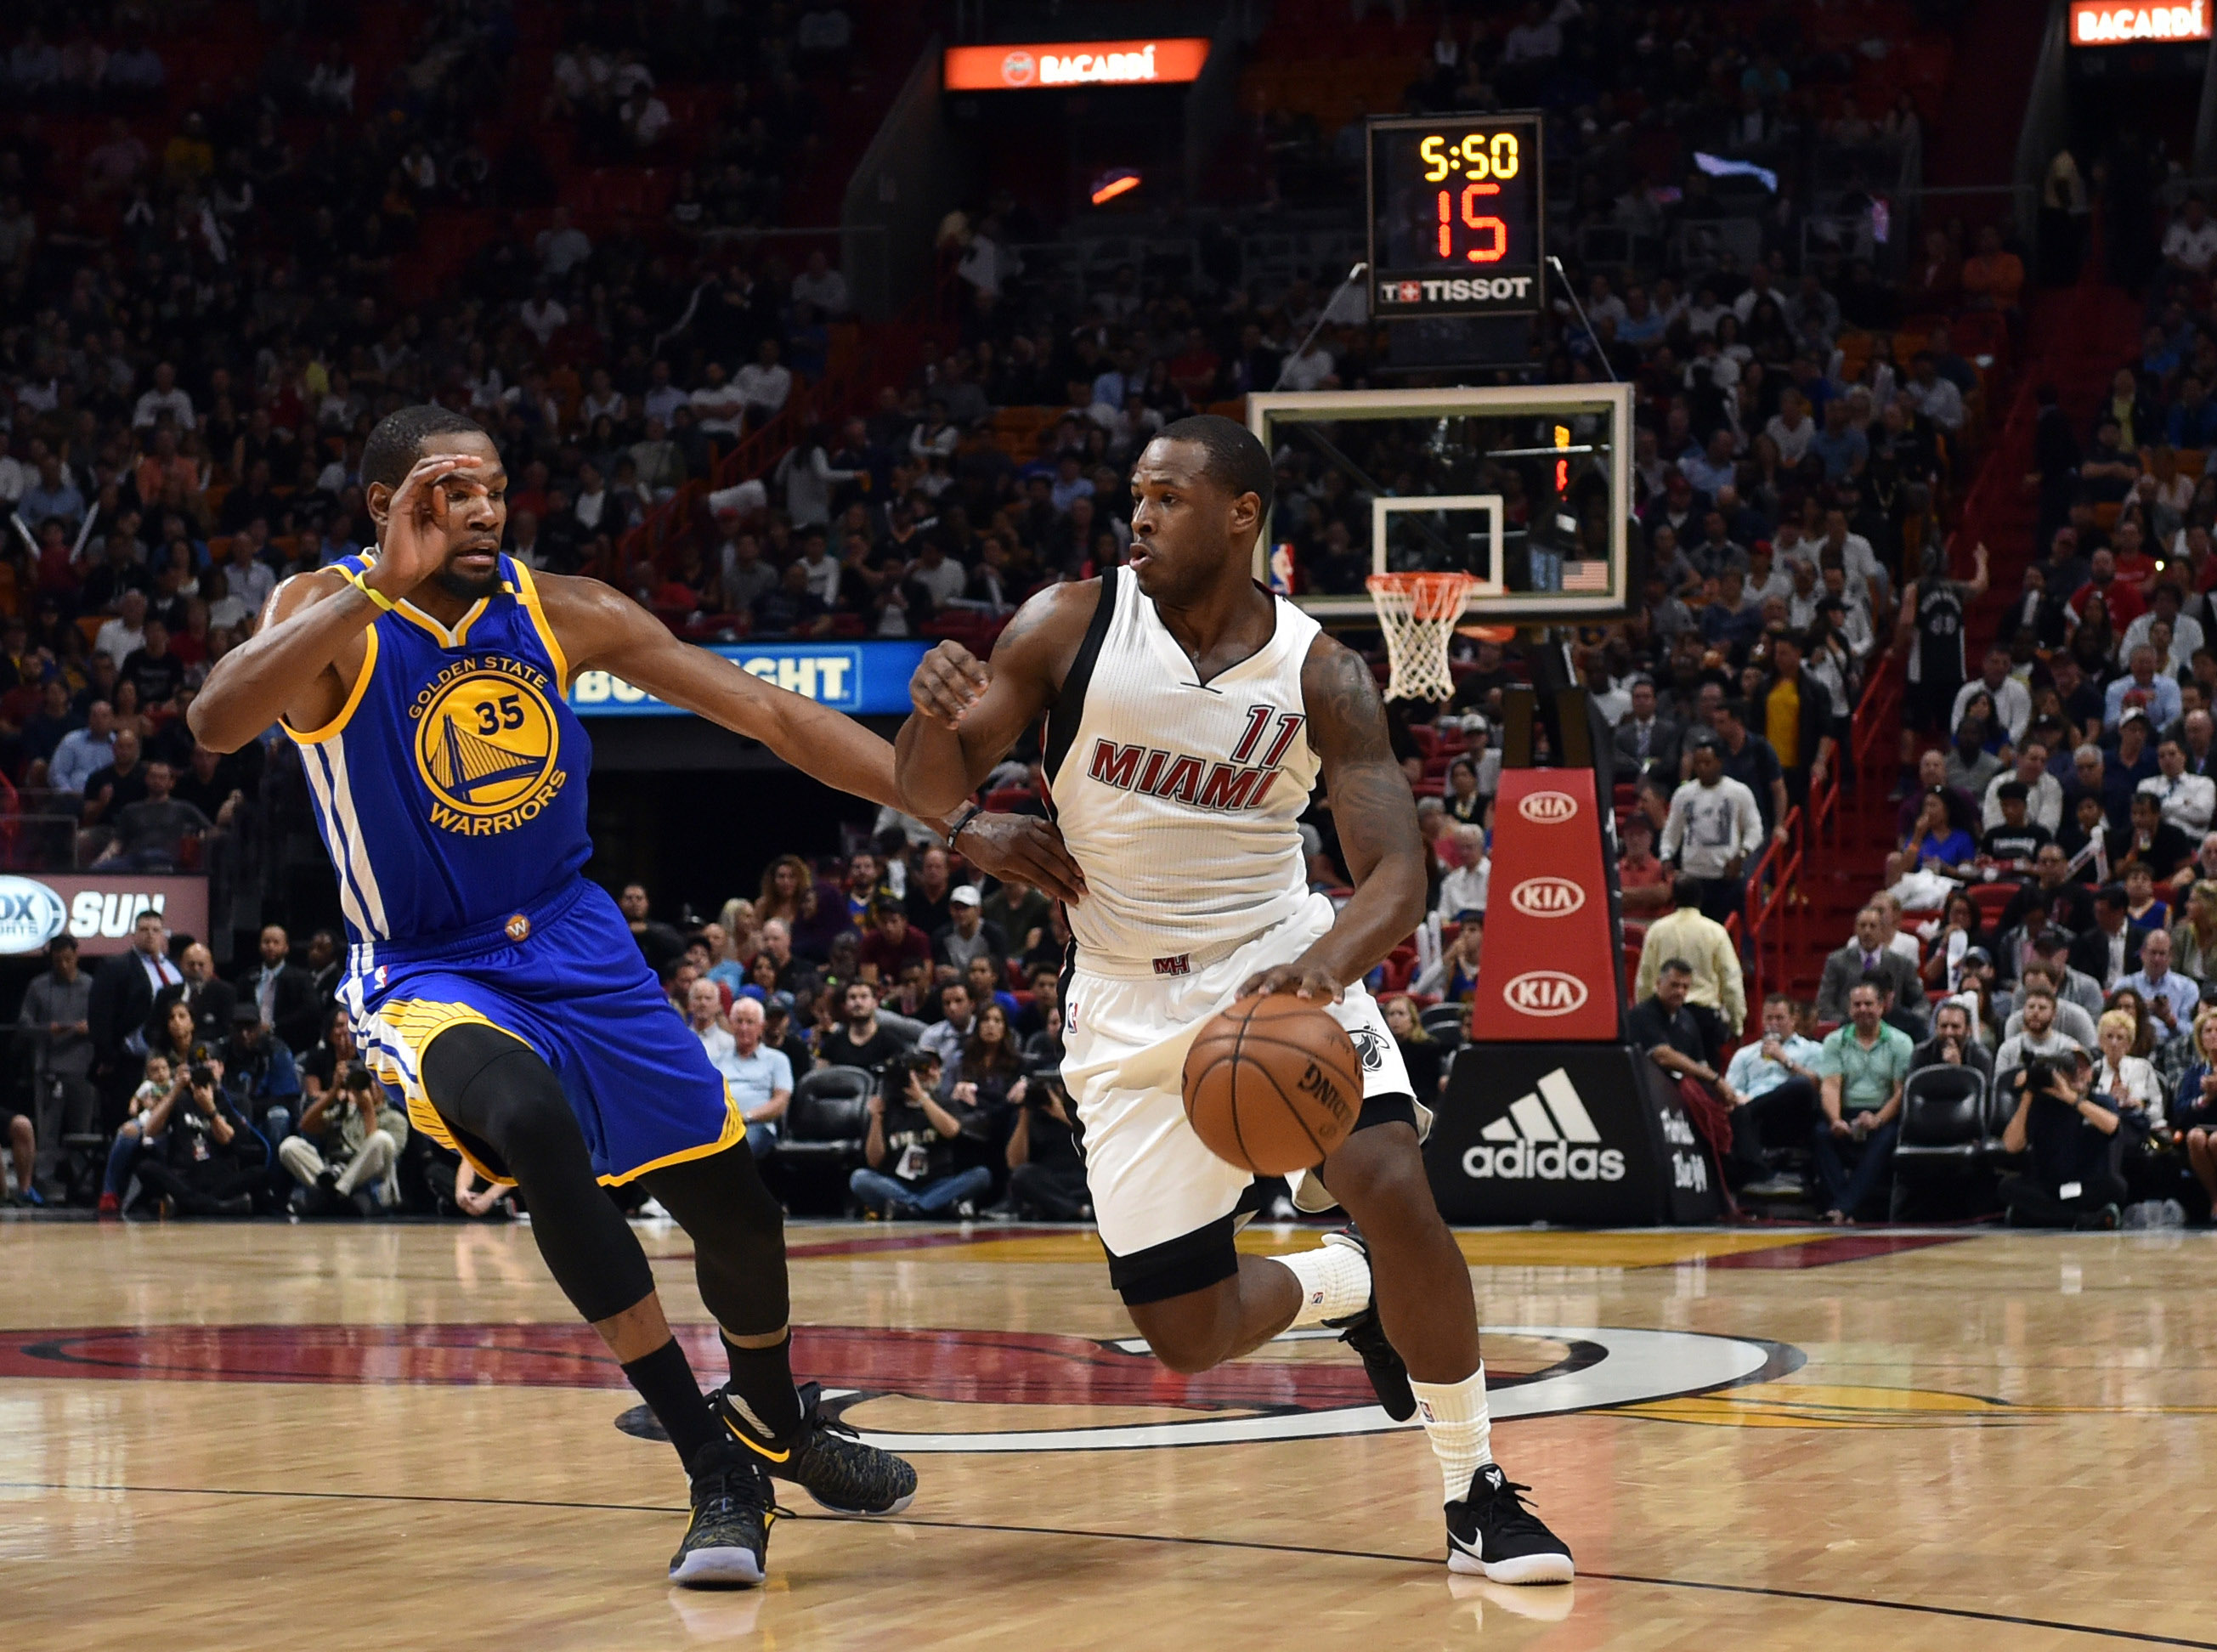 Jan 23, 2017; Miami, FL, USA; Miami Heat guard Dion Waiters (11) drives to the basket as Golden State Warriors forward Kevin Durant (35) defends during the first half at American Airlines Arena. Mandatory Credit: Steve Mitchell-USA TODAY Sports